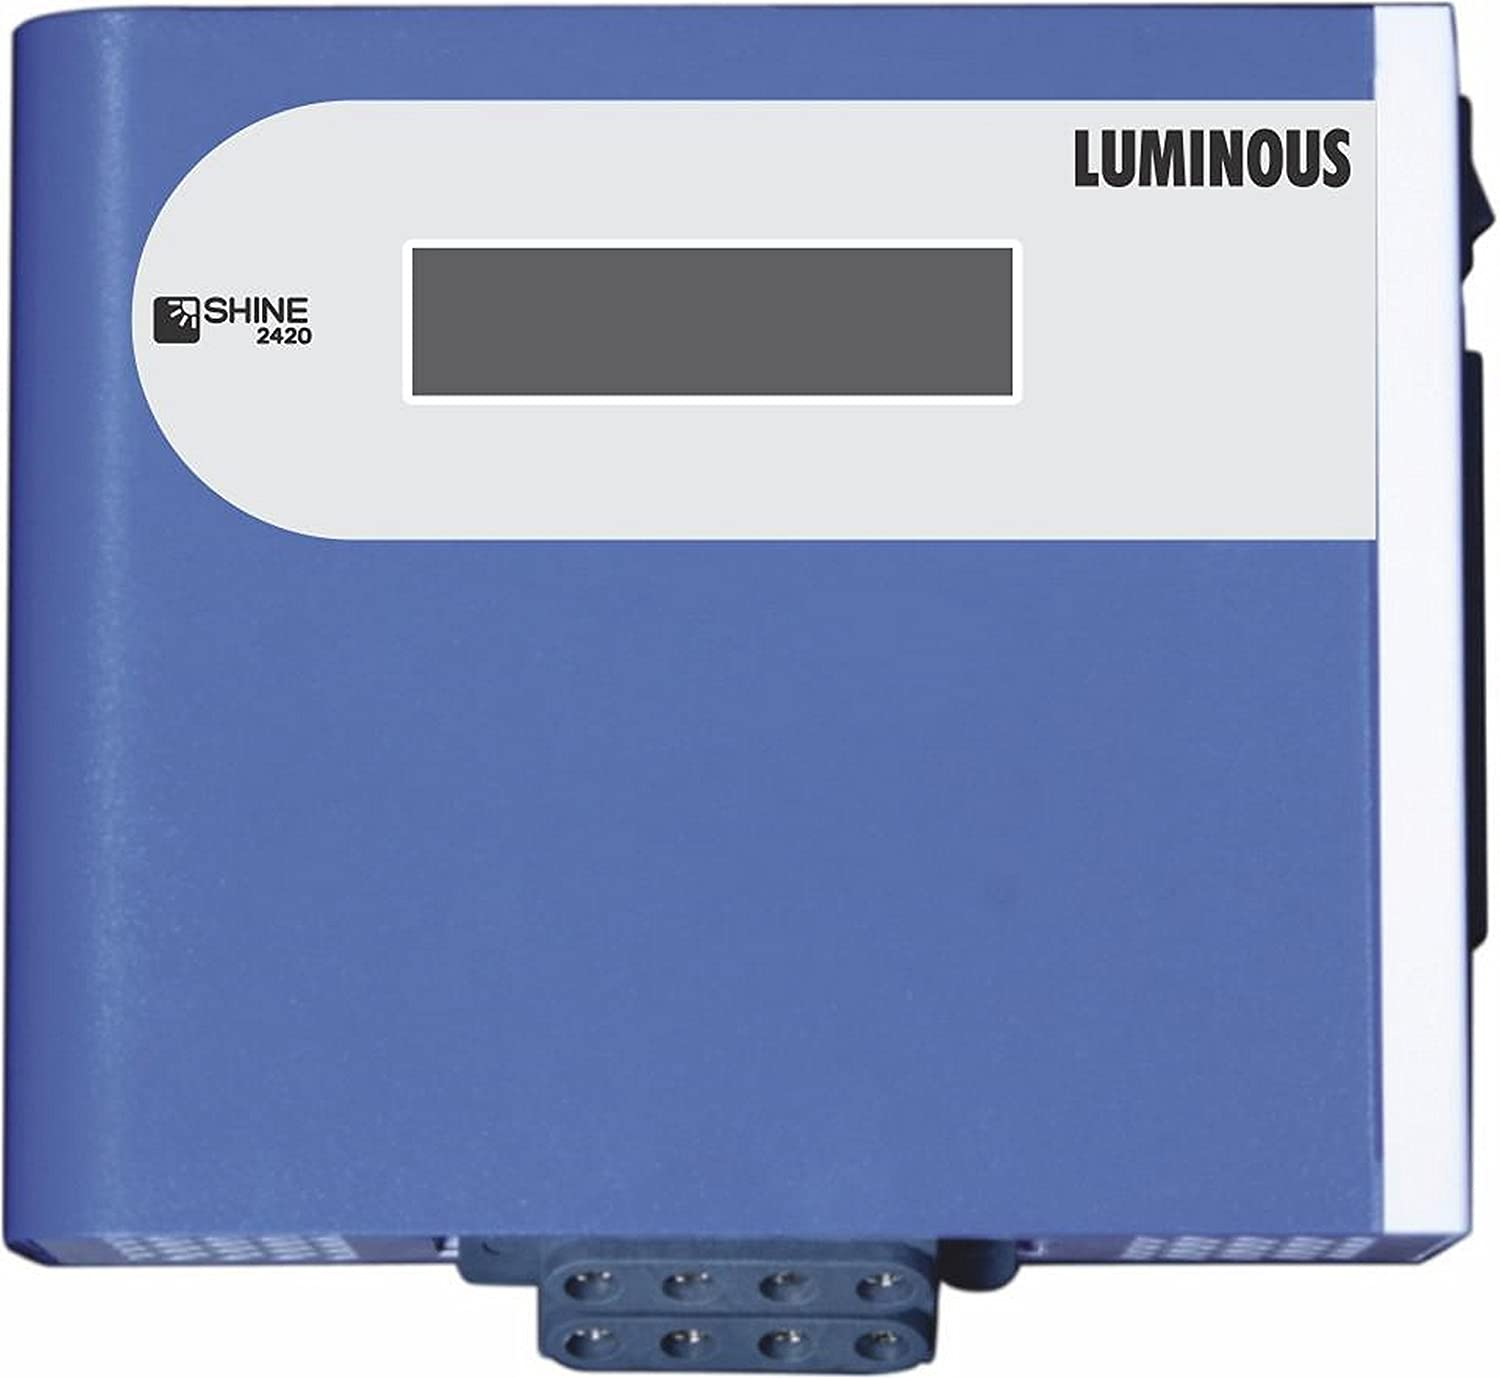 Luminous solar retrofit - Shine 2420 Solar Charge controller